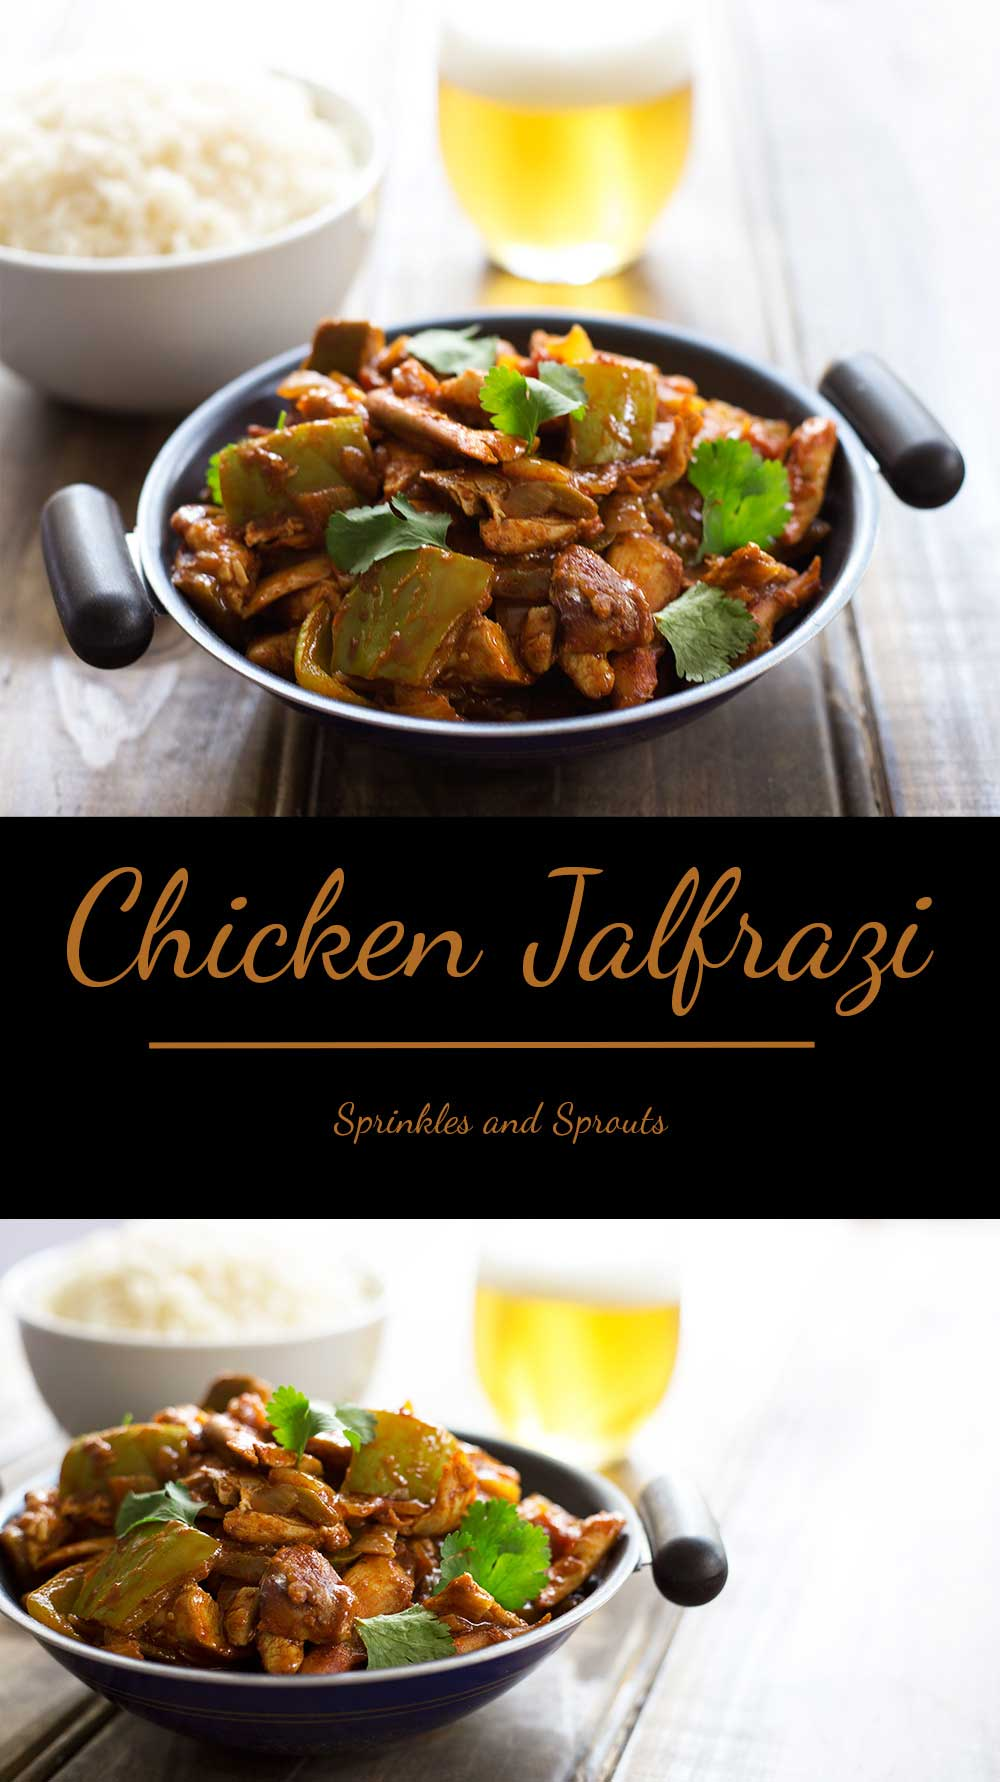 Chicken Jalfrezi, a fresh, zesty spicy curry packed withfresh tomatoes, green capsicum, green chillies, onions, herbs andspices. Crack open a beer and enjoy a homemade 'takeaway'.